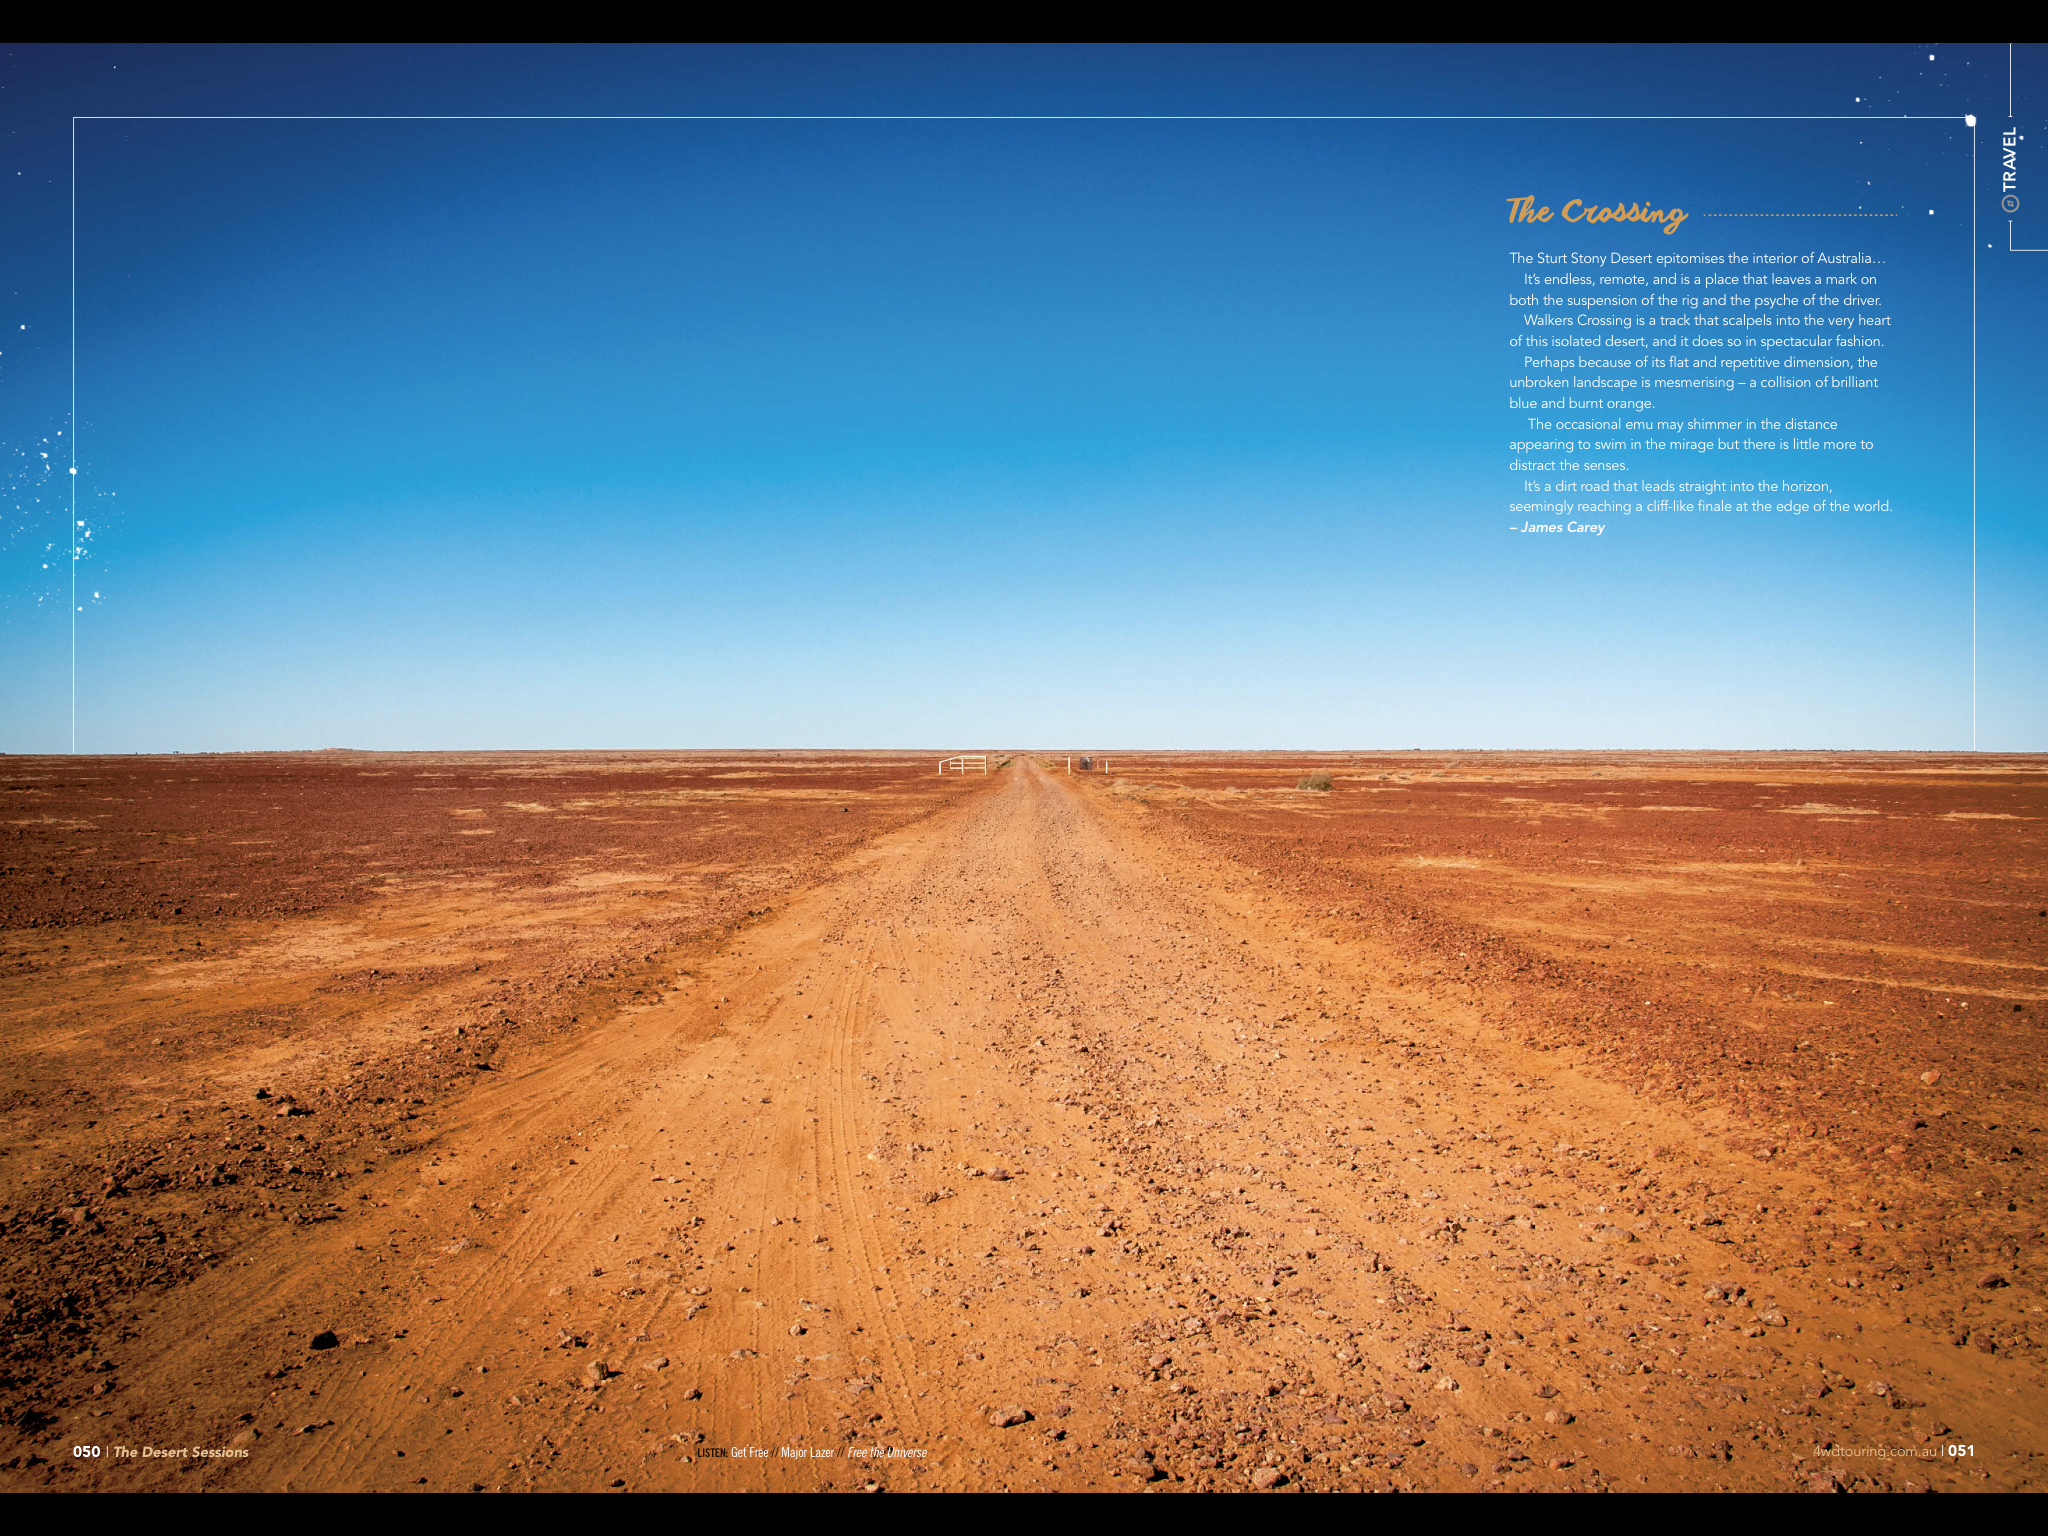 The Crossing... - The Sturt Stony Desert epitomises the interior of Australia. Stark. Endless. Remote.  It is a place that leaves a mark on both car suspension and driver.  Walkers Crossing is one of the few tracks which penetrates this isolated desert.  Where blue meets burnt orange the dirt road leads to the horizon seemingly reaching a cliff like finale on the edge of the world.Despite its flat repetitive dimension there is something mesmerising about this unbroken landscape. It is common to travel this path without ever seeing another vehicle. The occasional emu may shimmer in the distance appearing to swim in the mirage but there is little more to distract the senses.Nonetheless, I would replace the noisy, chaotic, smog filled city roads with this track any day.